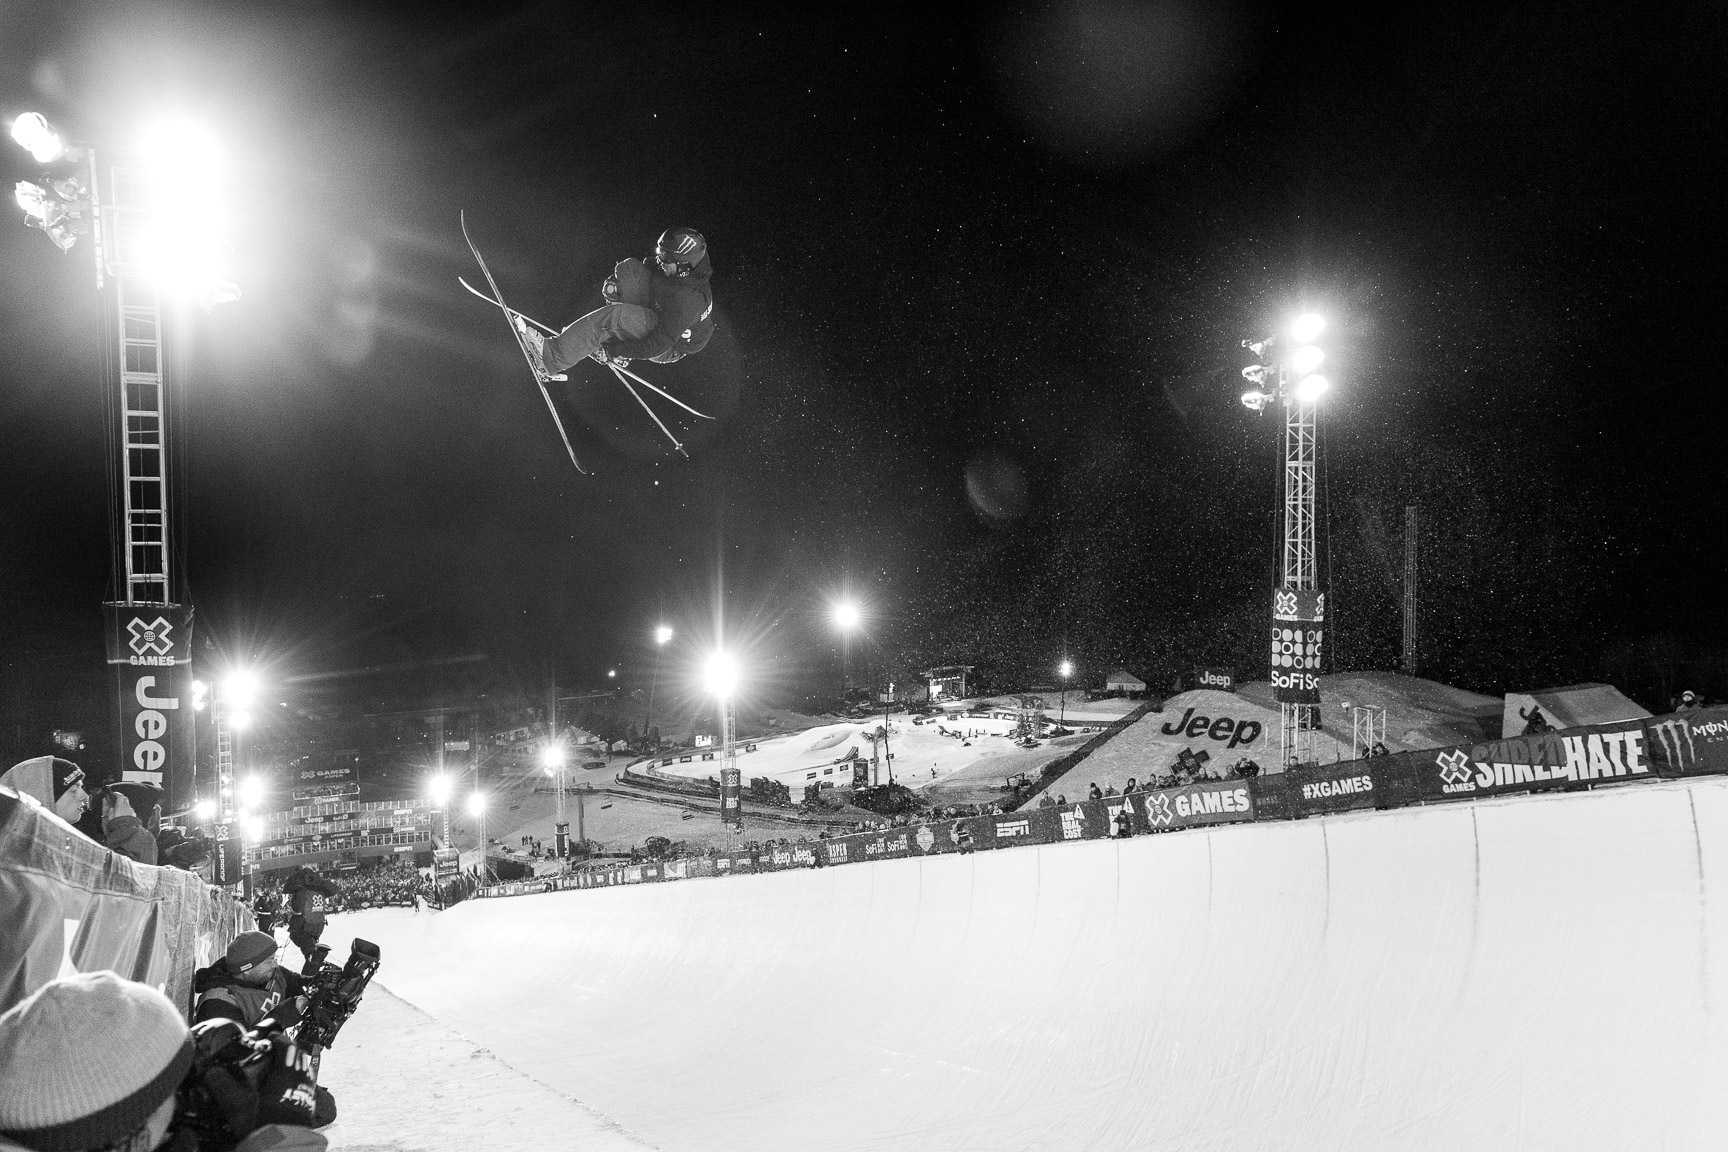 David Wise, Men's Ski SuperPipe Final